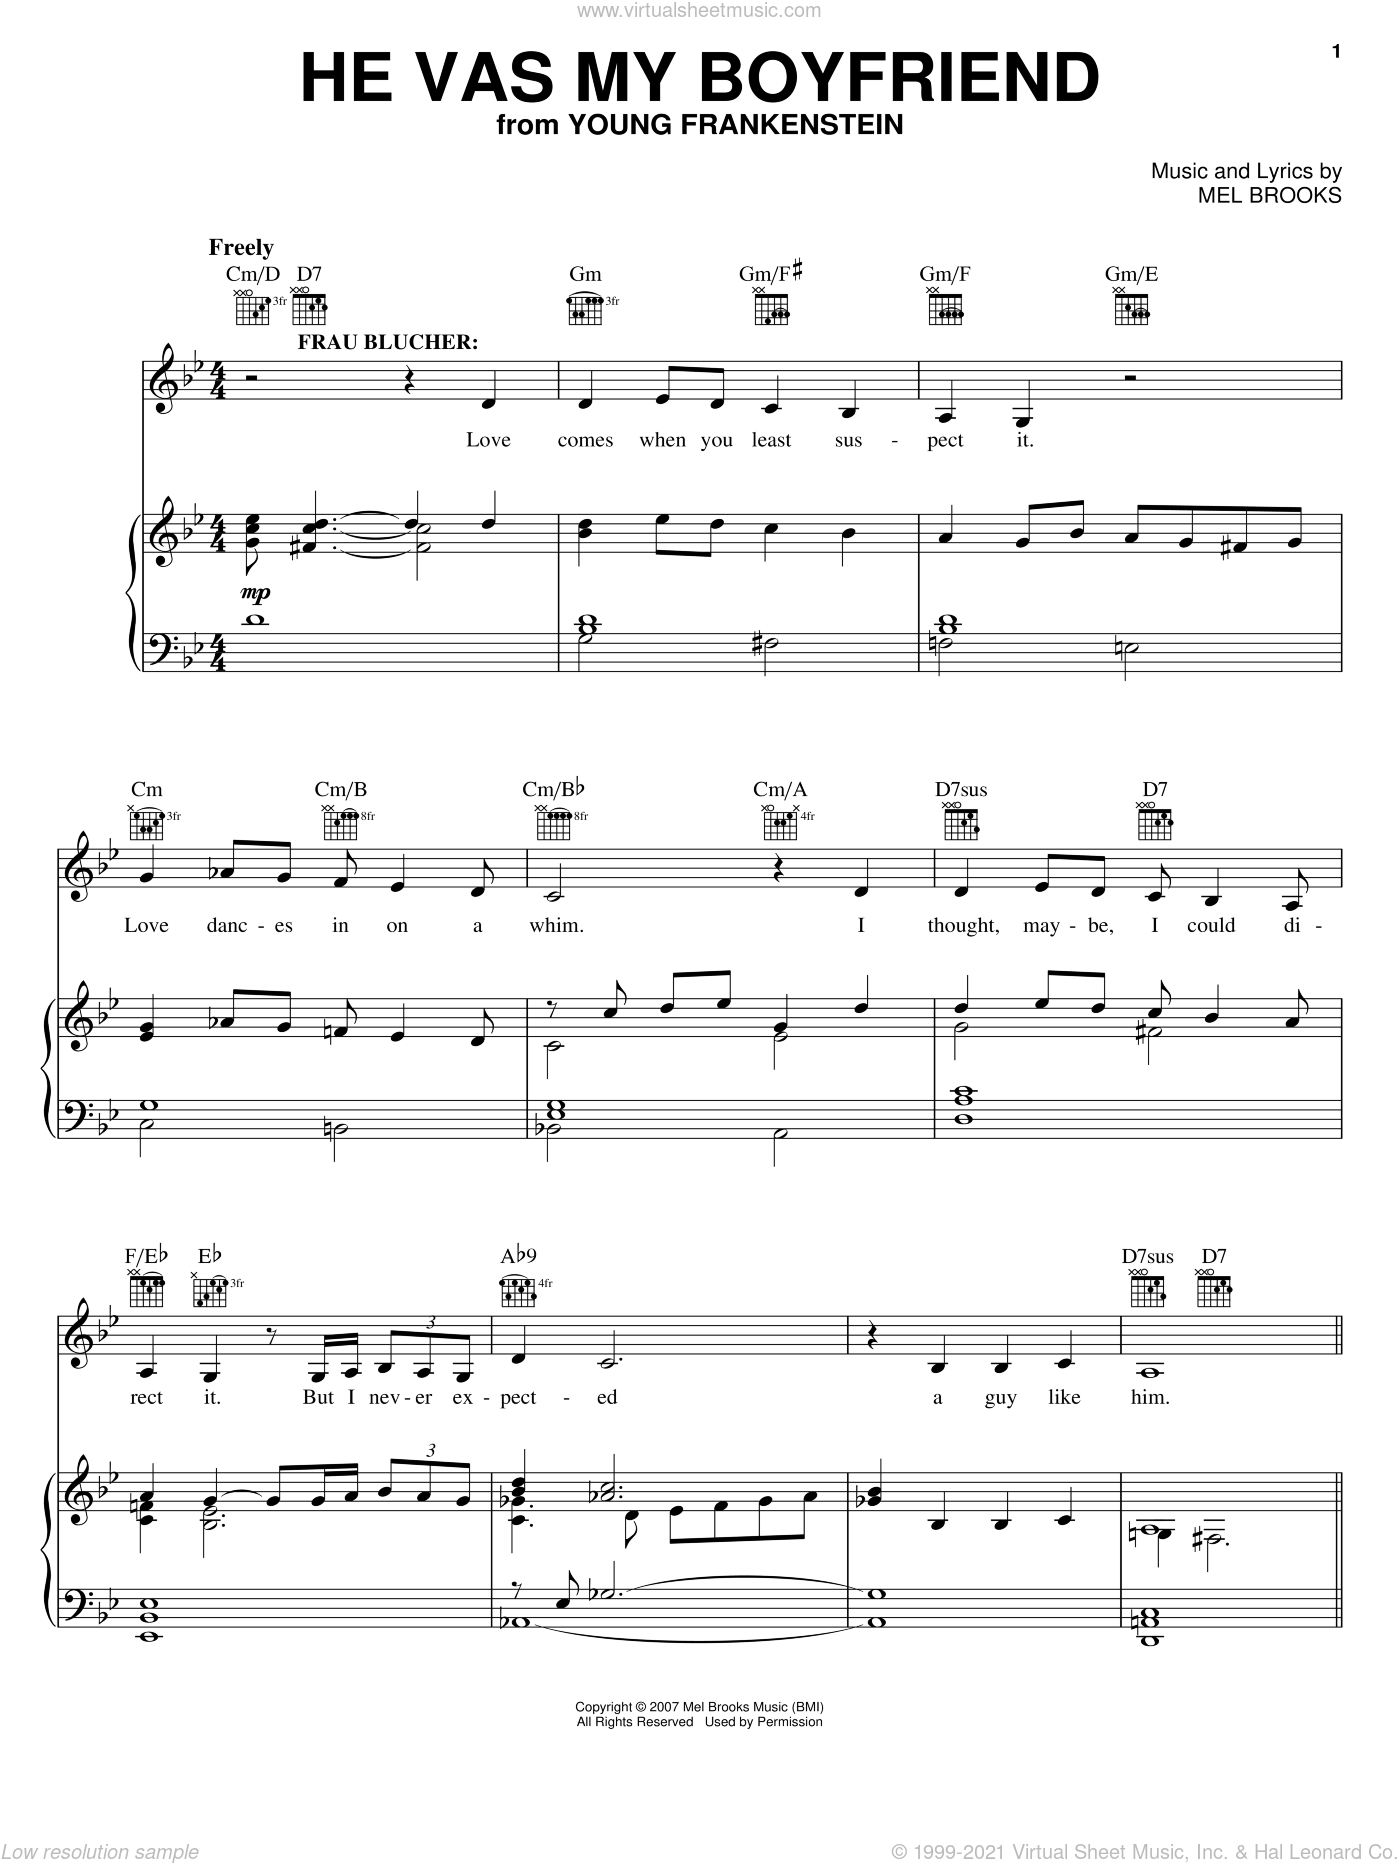 He Vas My Boyfriend sheet music for voice, piano or guitar by Thomas Meehan and Mel Brooks. Score Image Preview.